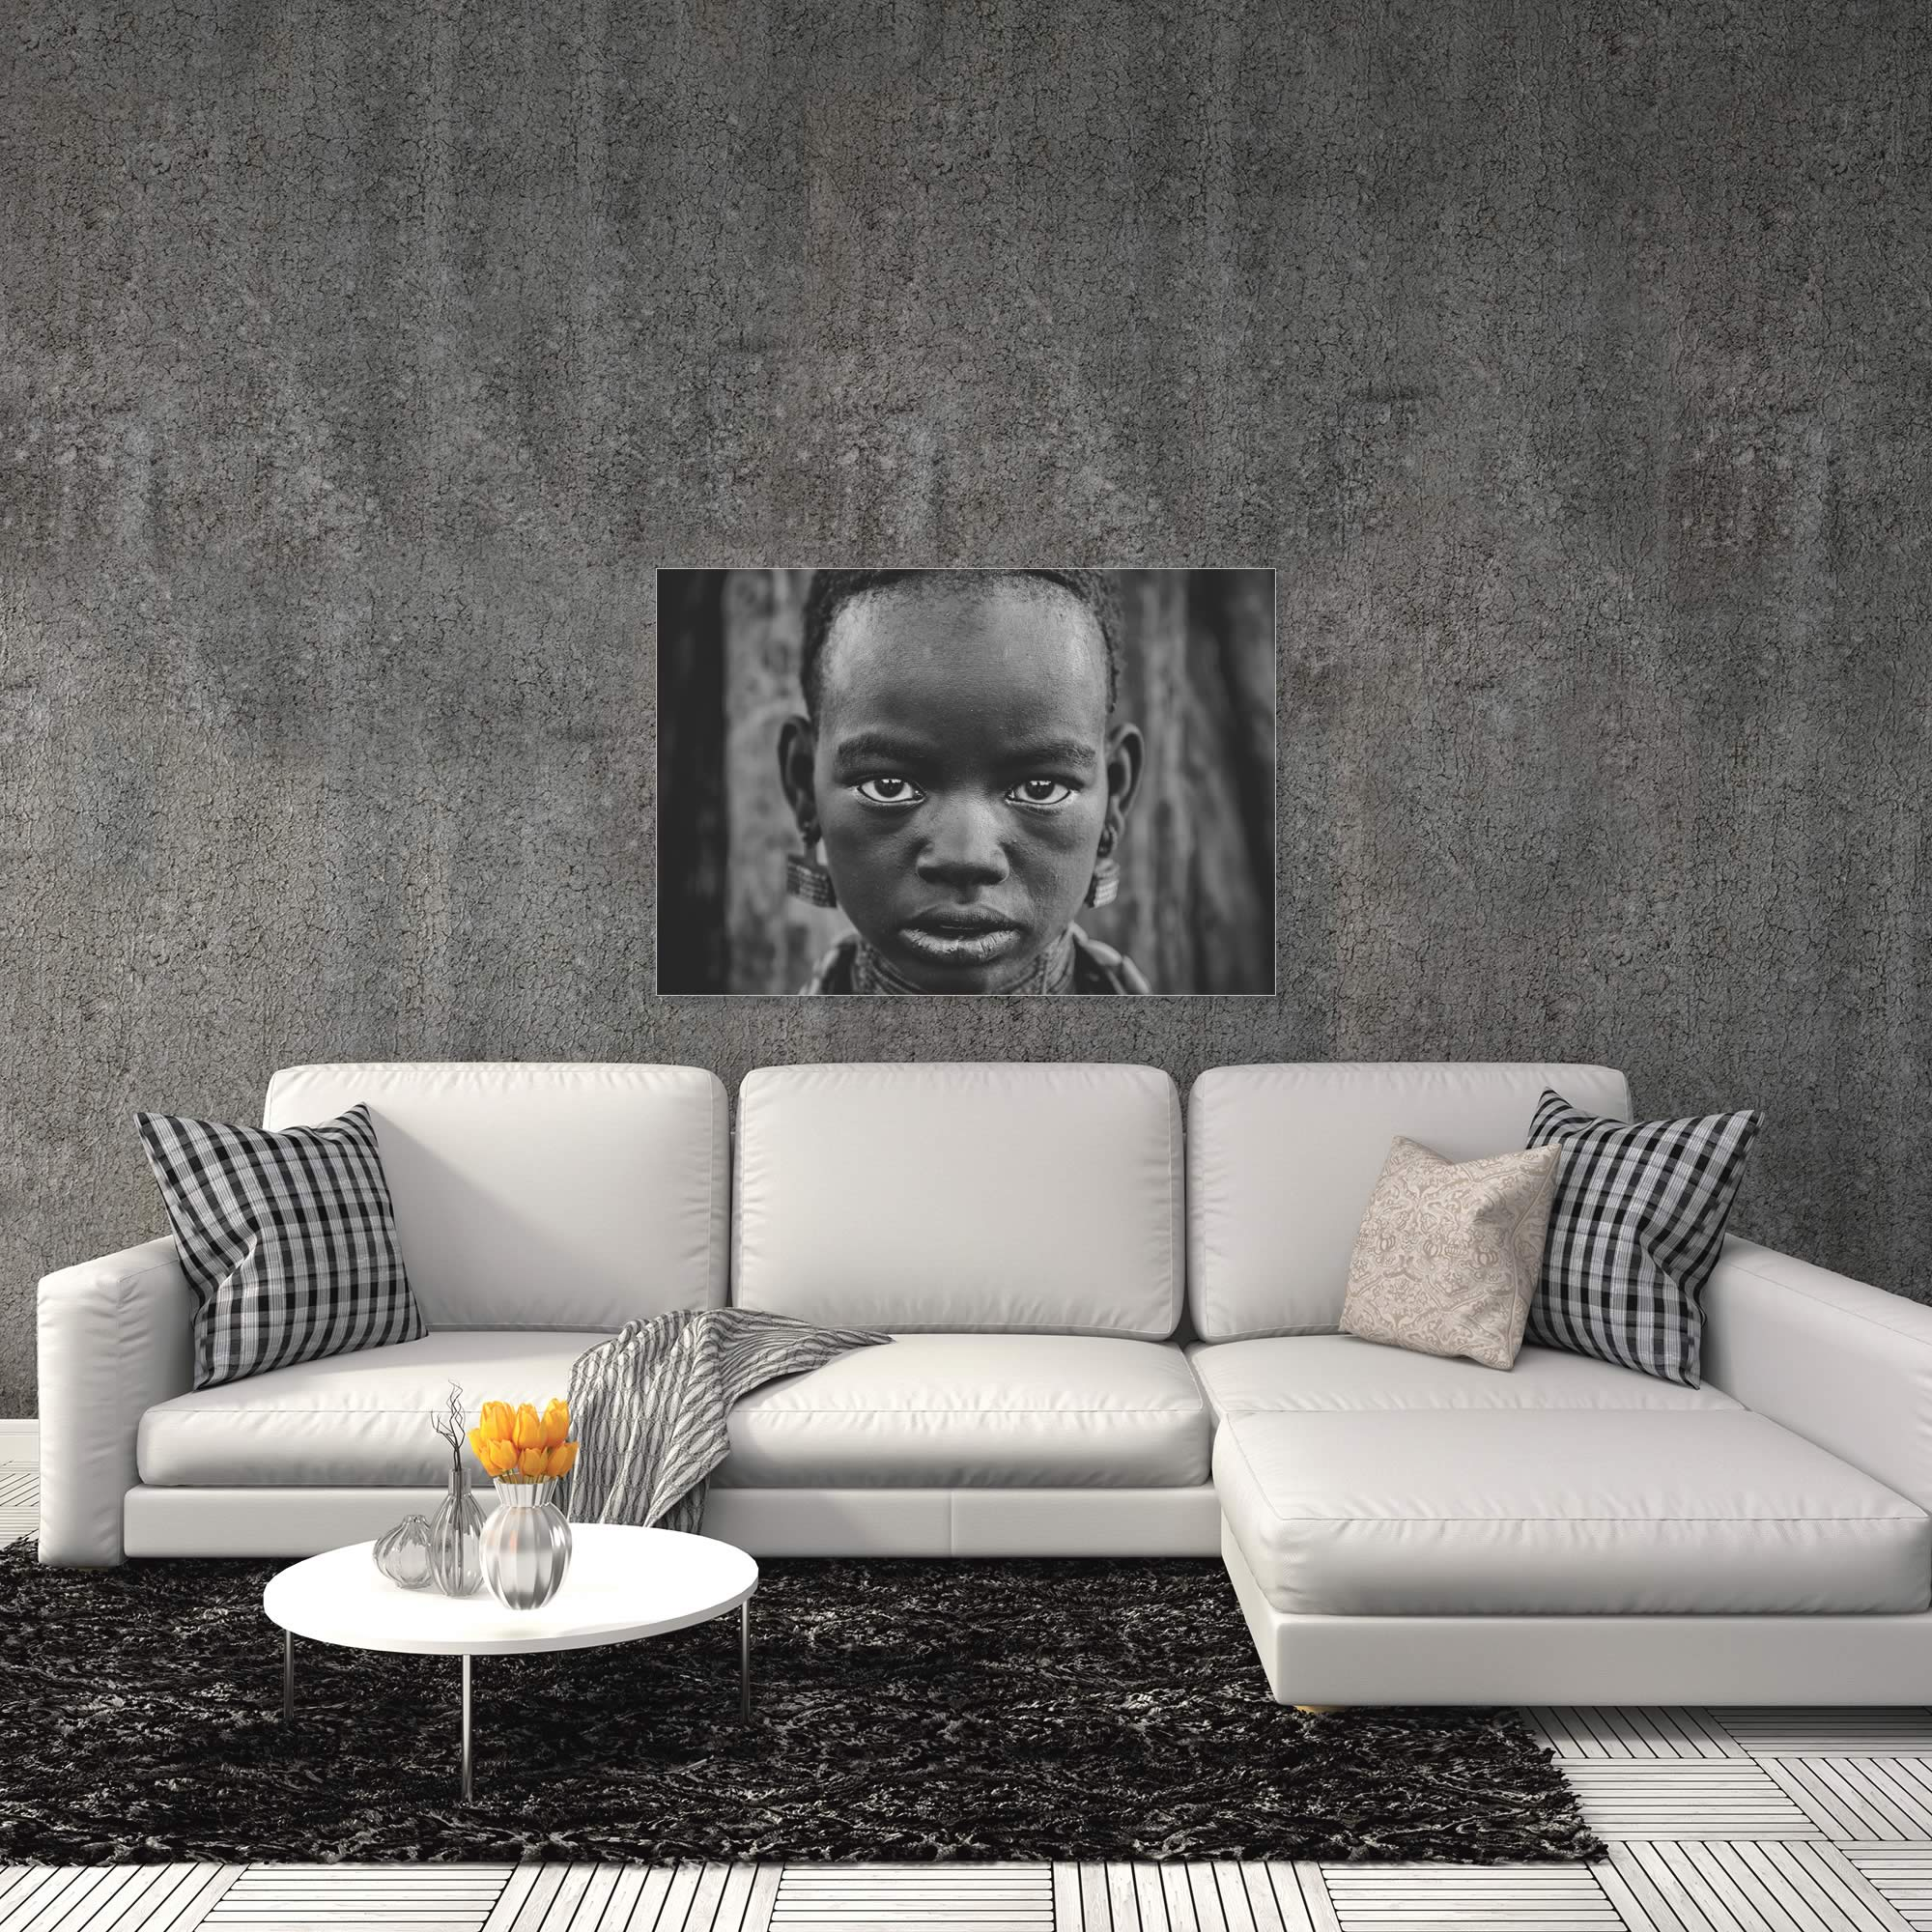 Hammer Girl by Mohammed Al Sulaili - African Fashion Art on Metal or Acrylic - Alternate View 1